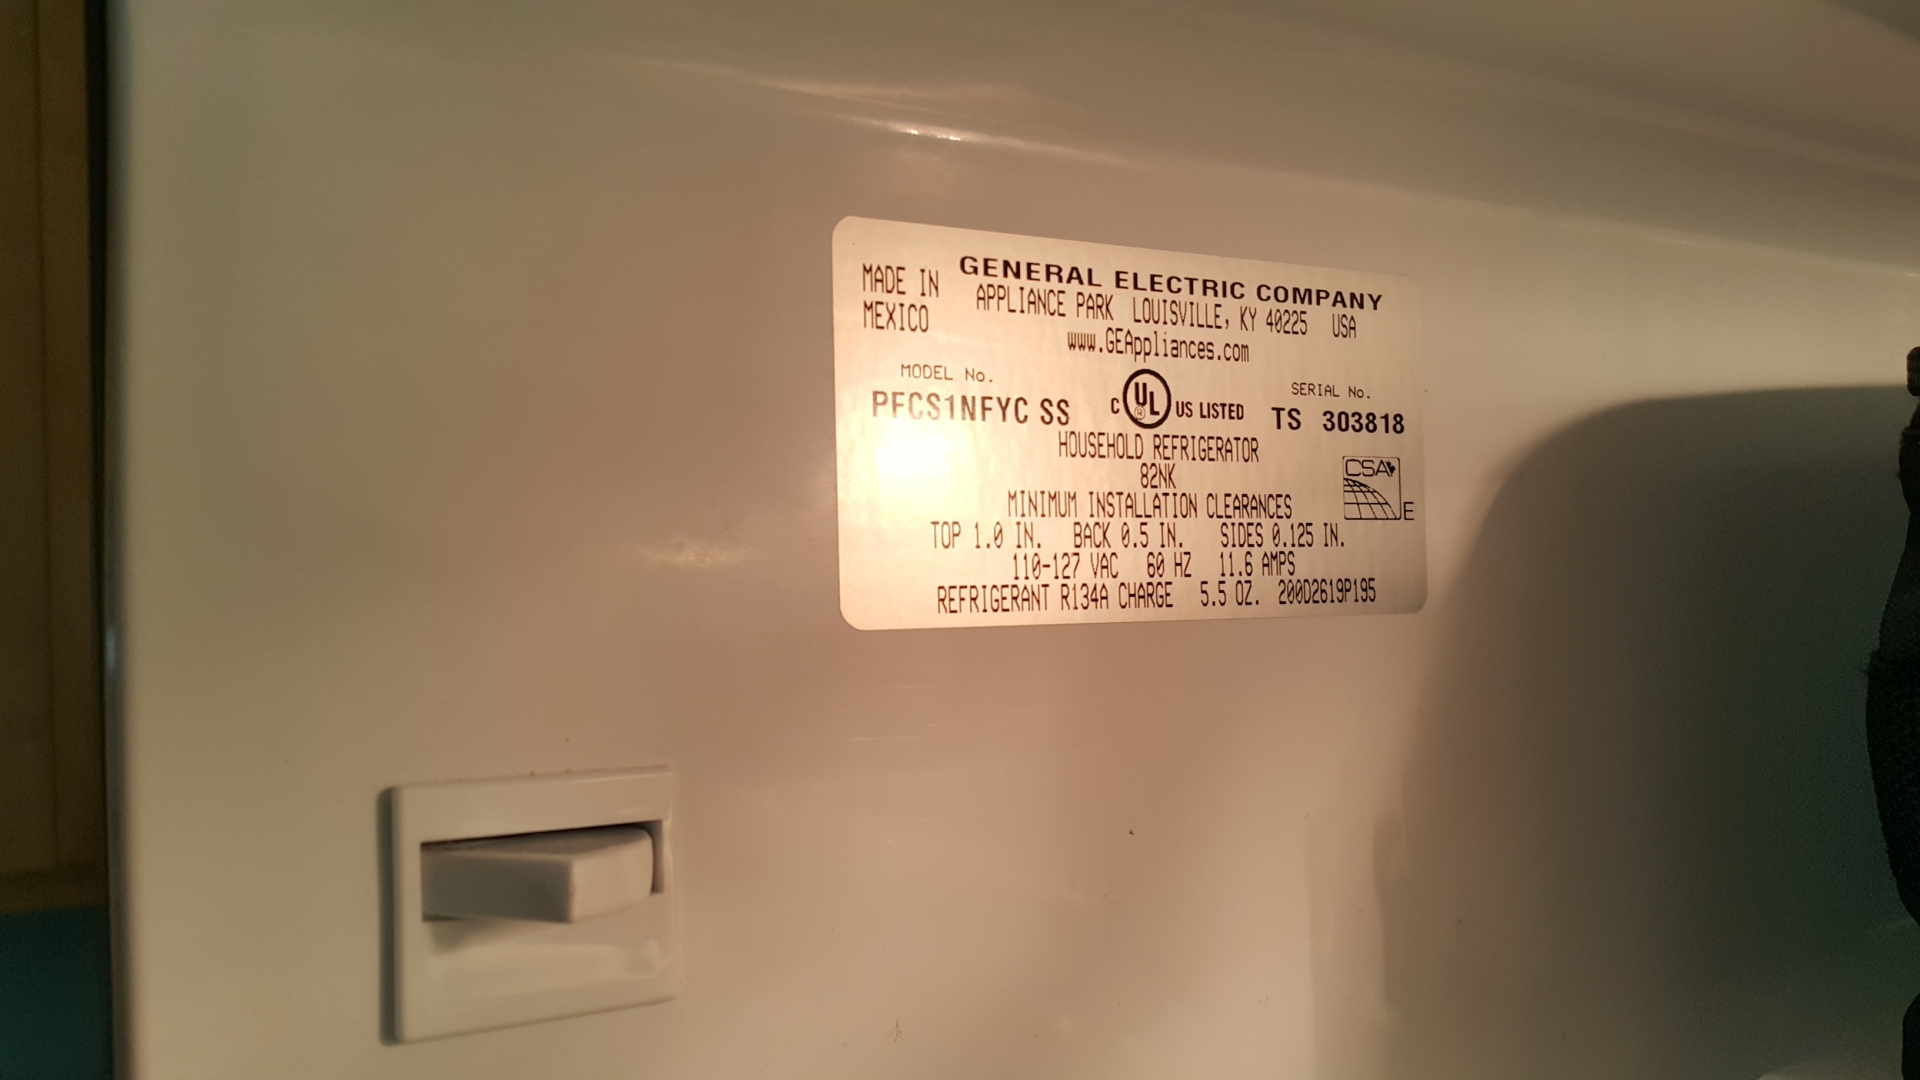 GE Profile pfcs1nfzss Refrigerator not cooling enough and collects